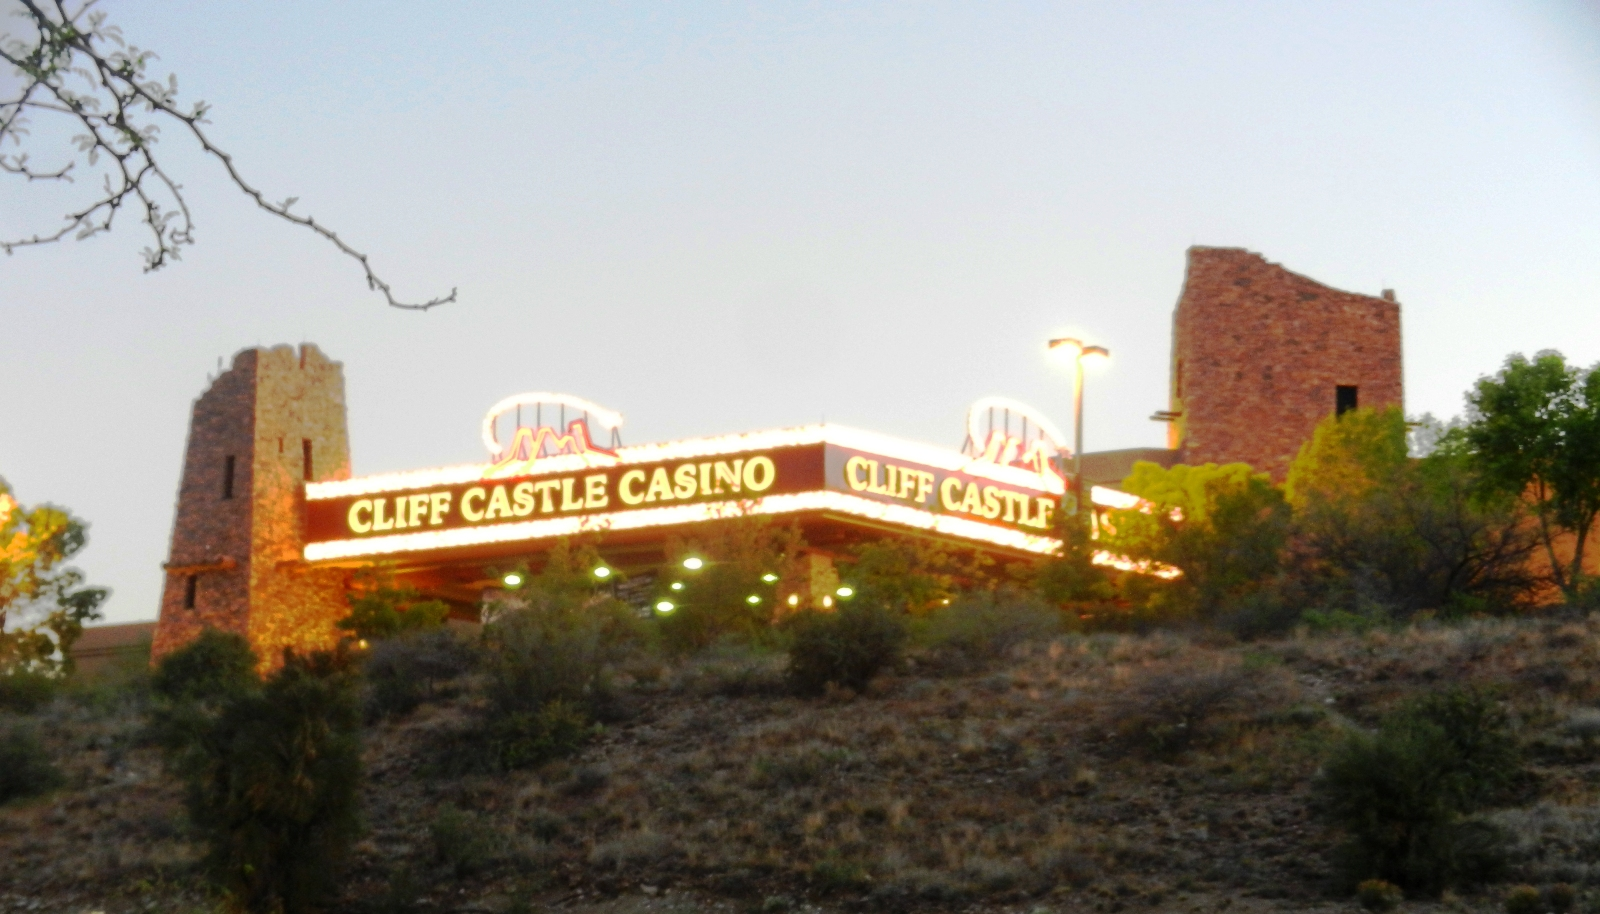 Cliff castle casino bowling number